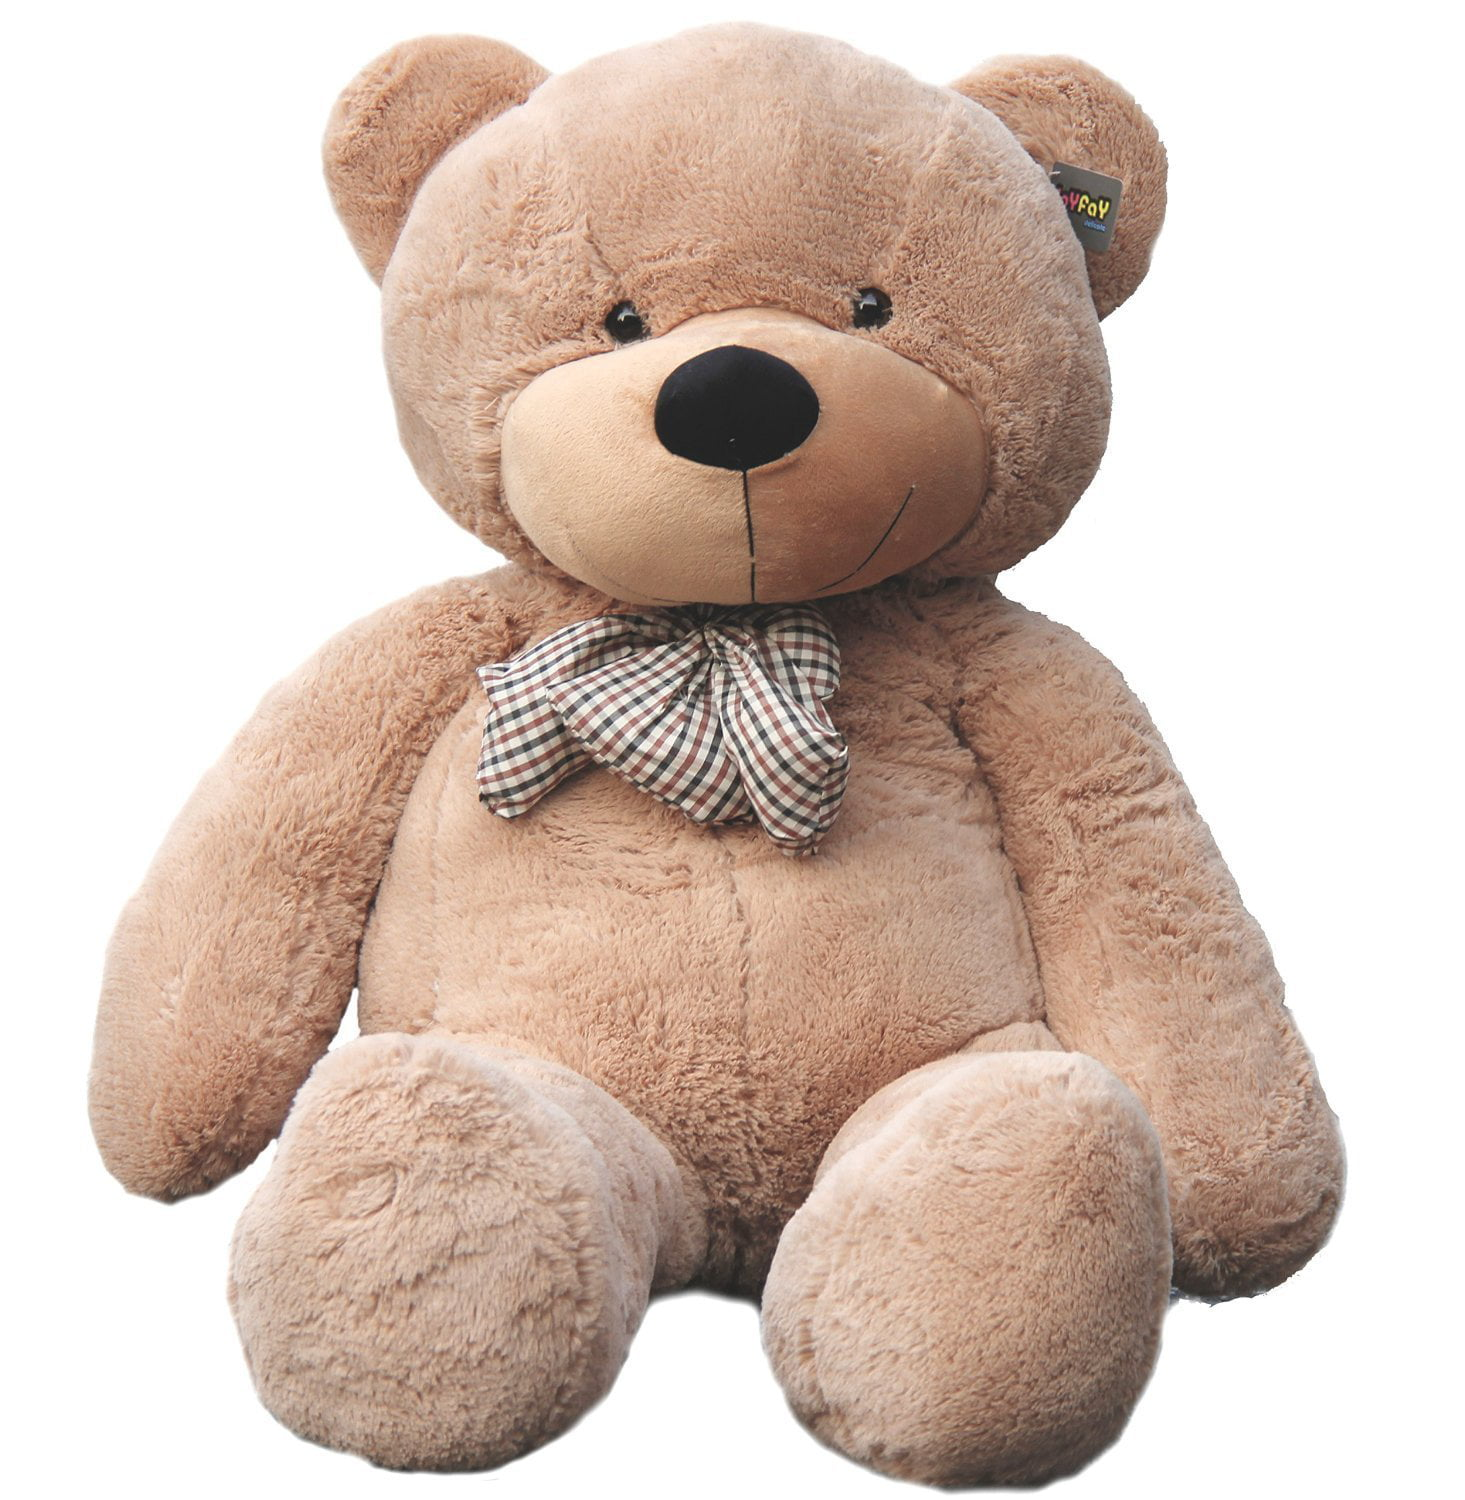 Joyfay Giant Teddy Bear in Light Brown- 5ft (63 inches) Big Teddy Bear for Birthdays,... by